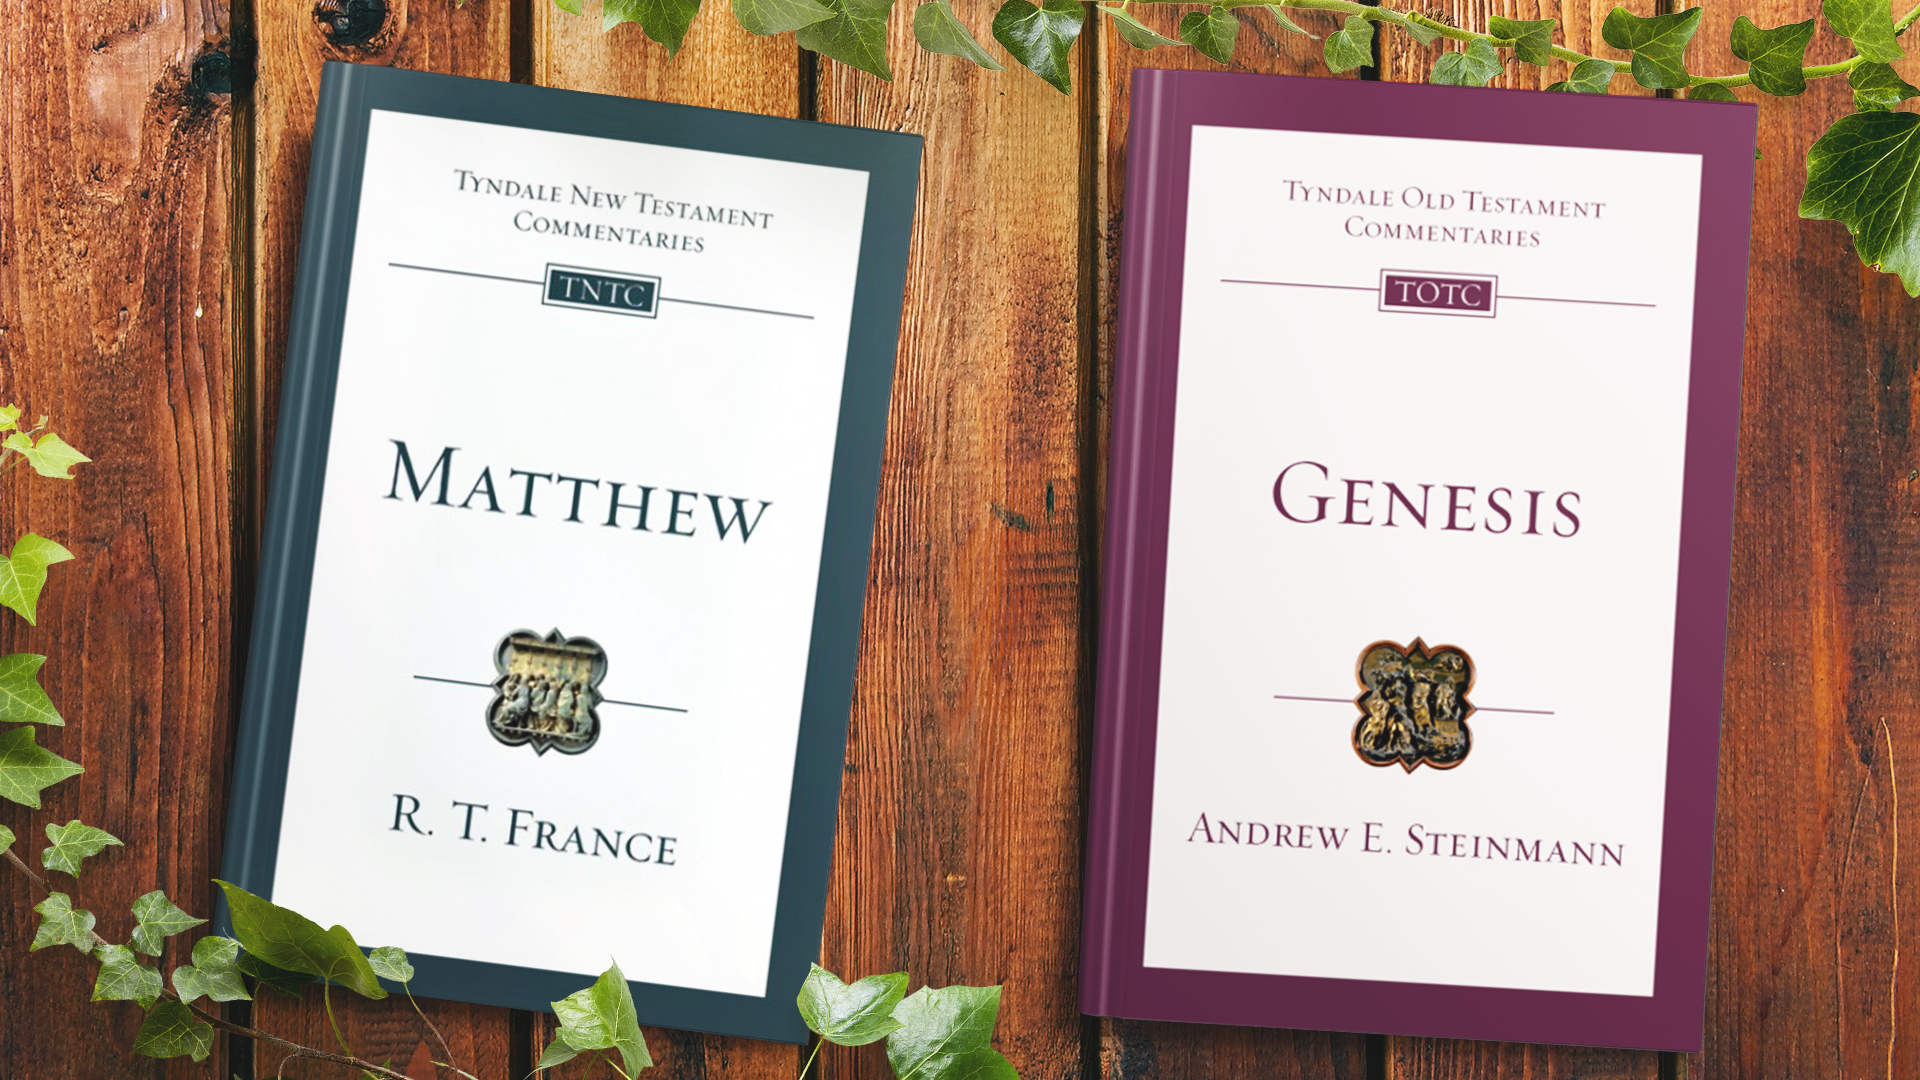 Tyndale Commentaries